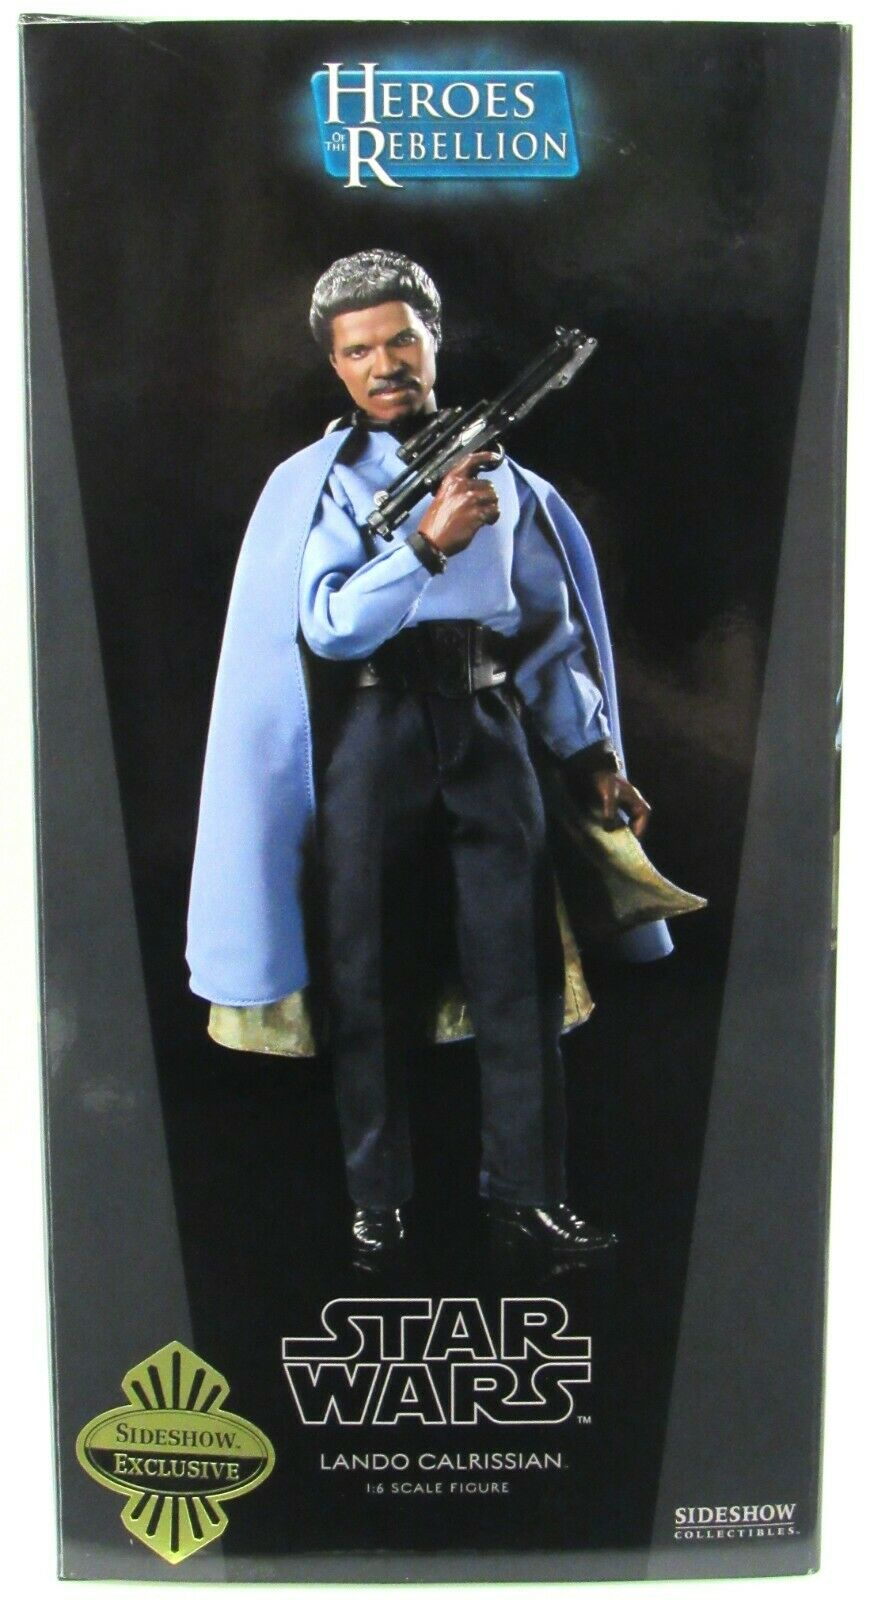 Sideshow Exclusive Star Wars 1:6 Lando Calrissian 2009 With Shipper on eBay thumbnail